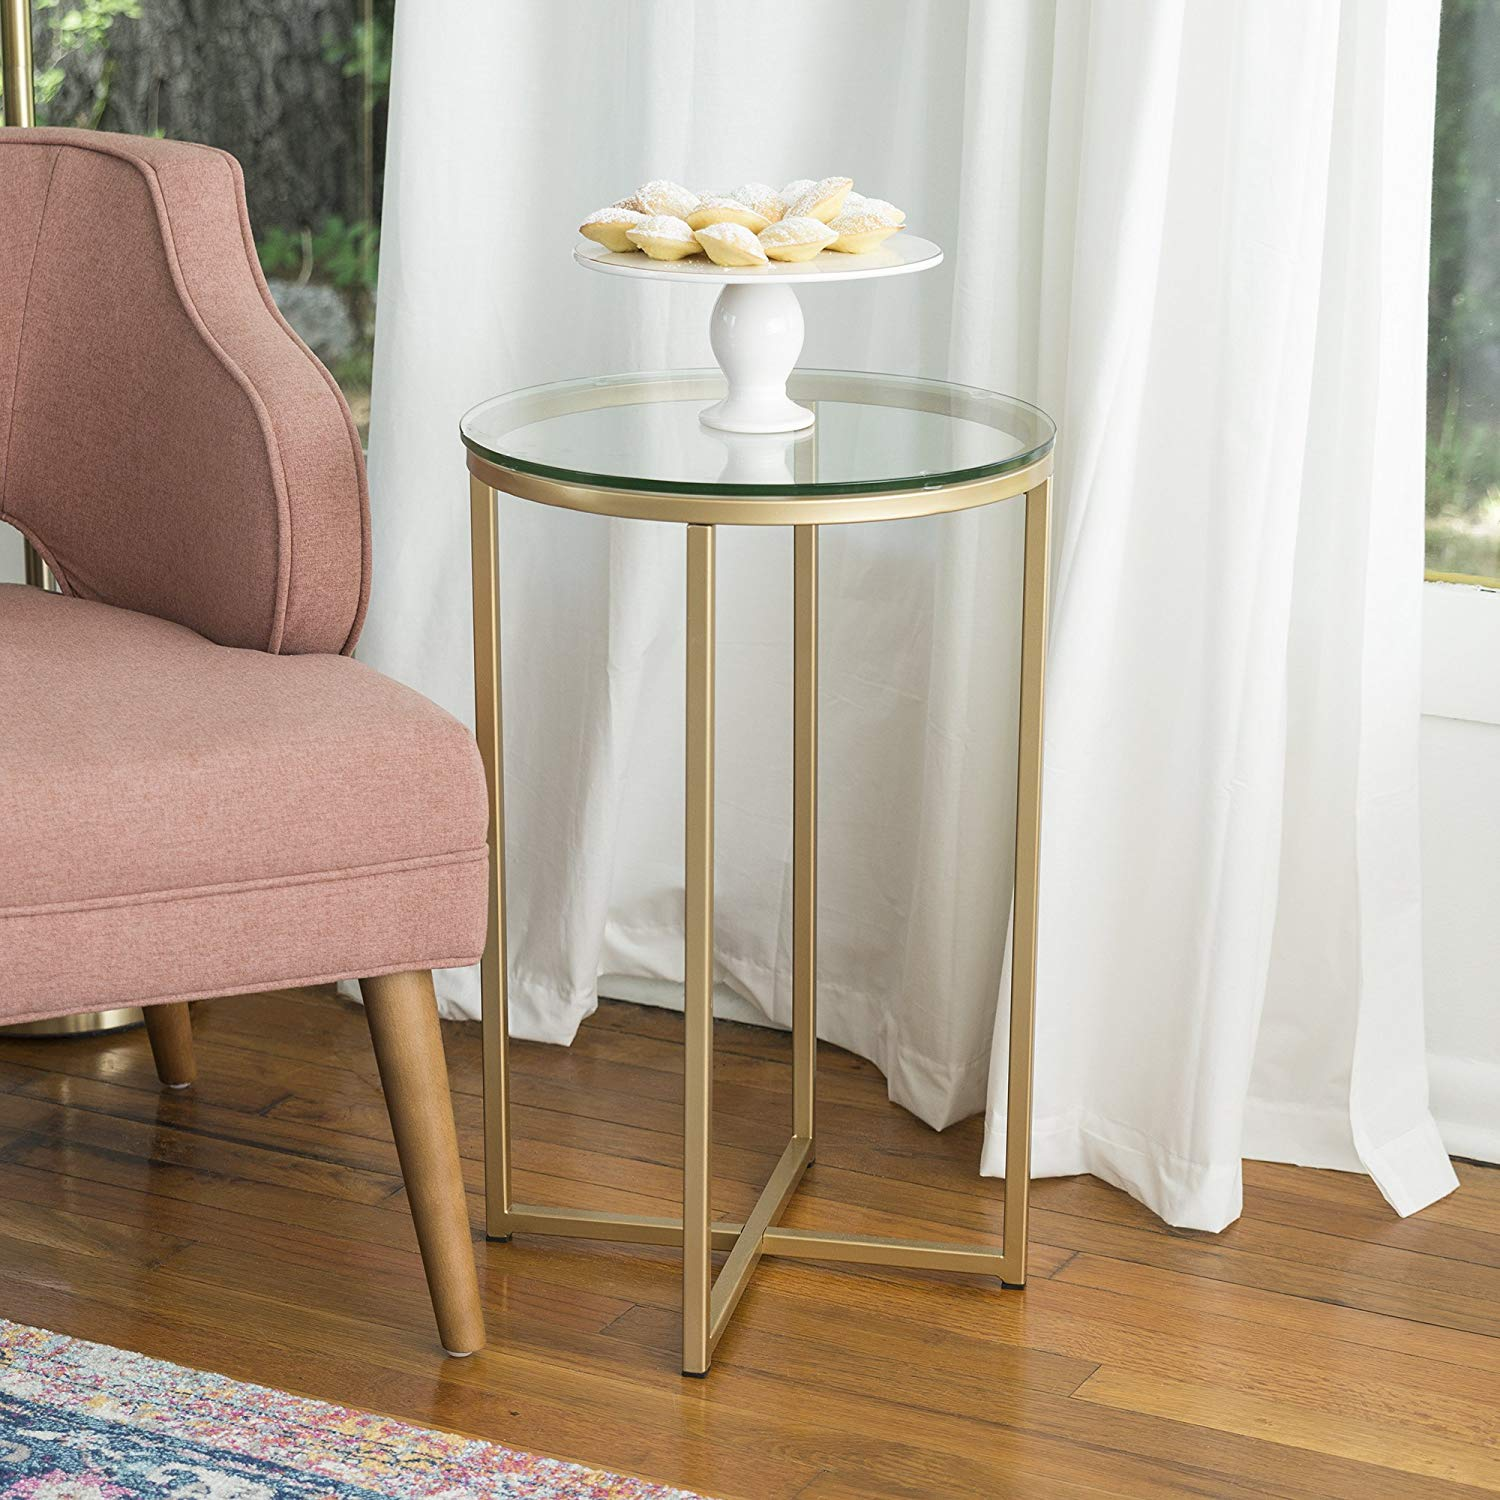 furniture round side table glass gold kitchen base accent target dining high top room sets copper drop down leaf white resin outdoor tables young america life square coffee